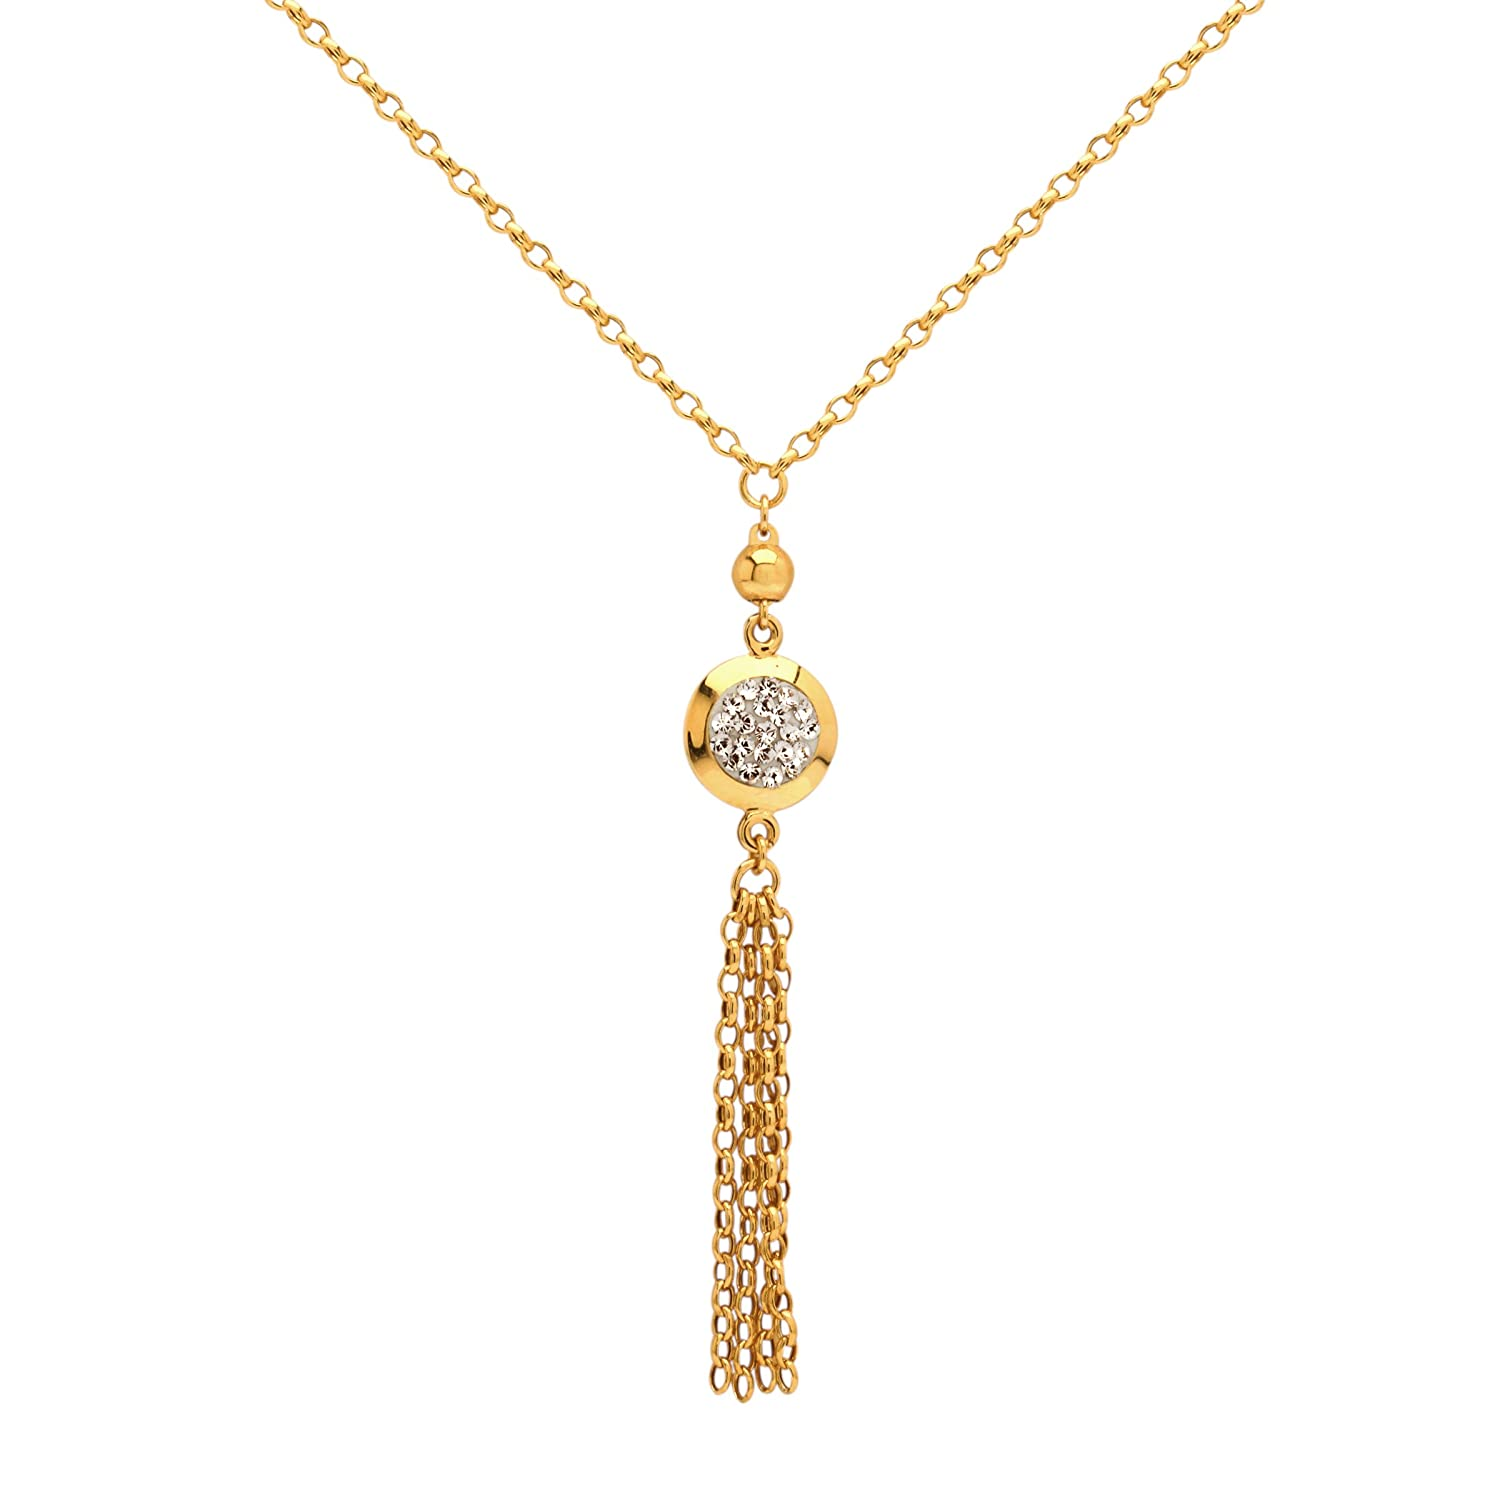 10K Yellow Gold Simulated Diamond CZ Quinceanera15 Anos Heart Pendant Necklace with 18 Chain